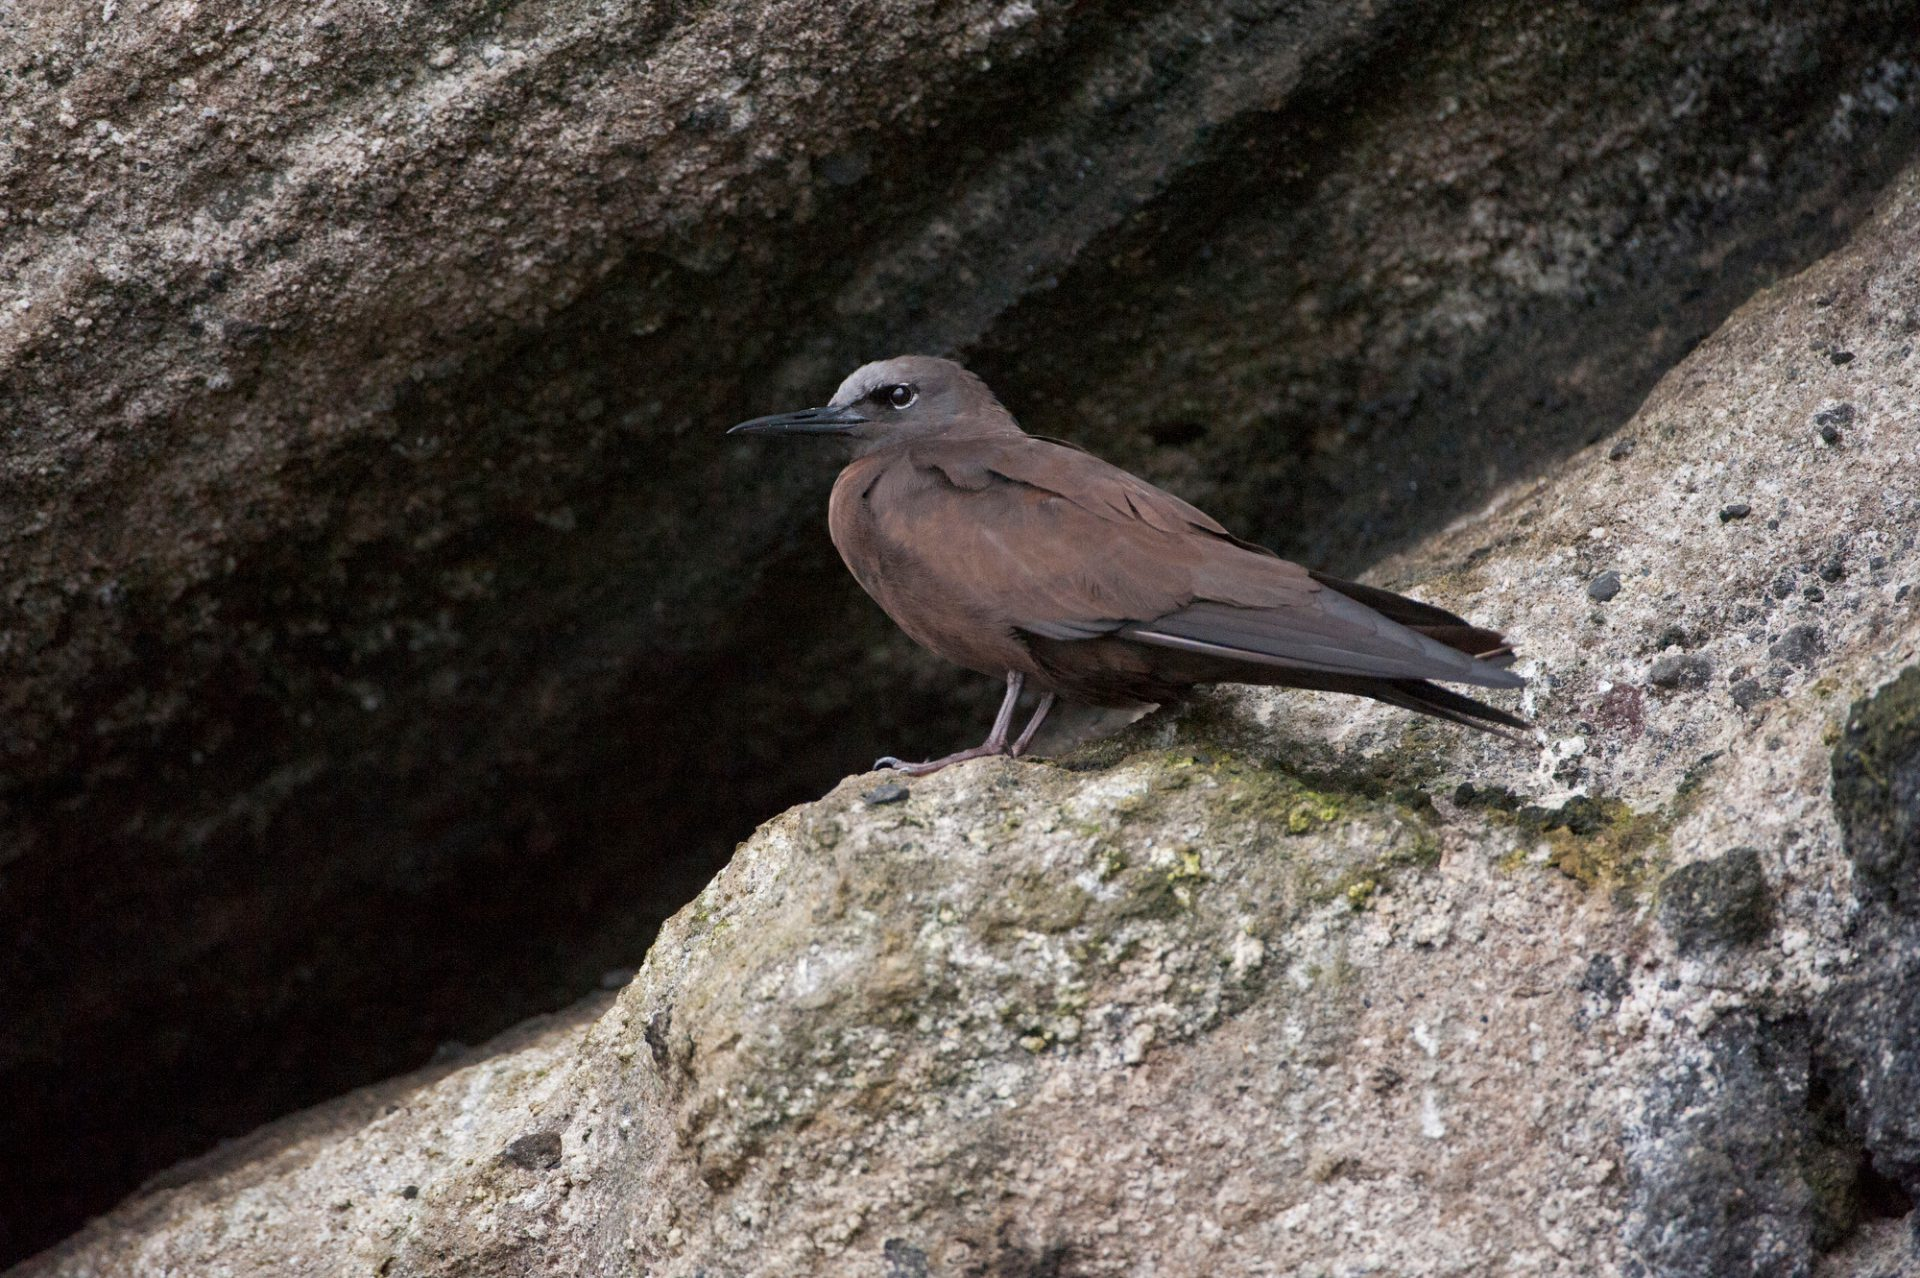 Photo: A brown noddy tern (Anous stolidus) at Tagus Cove in Galapagos National Park.